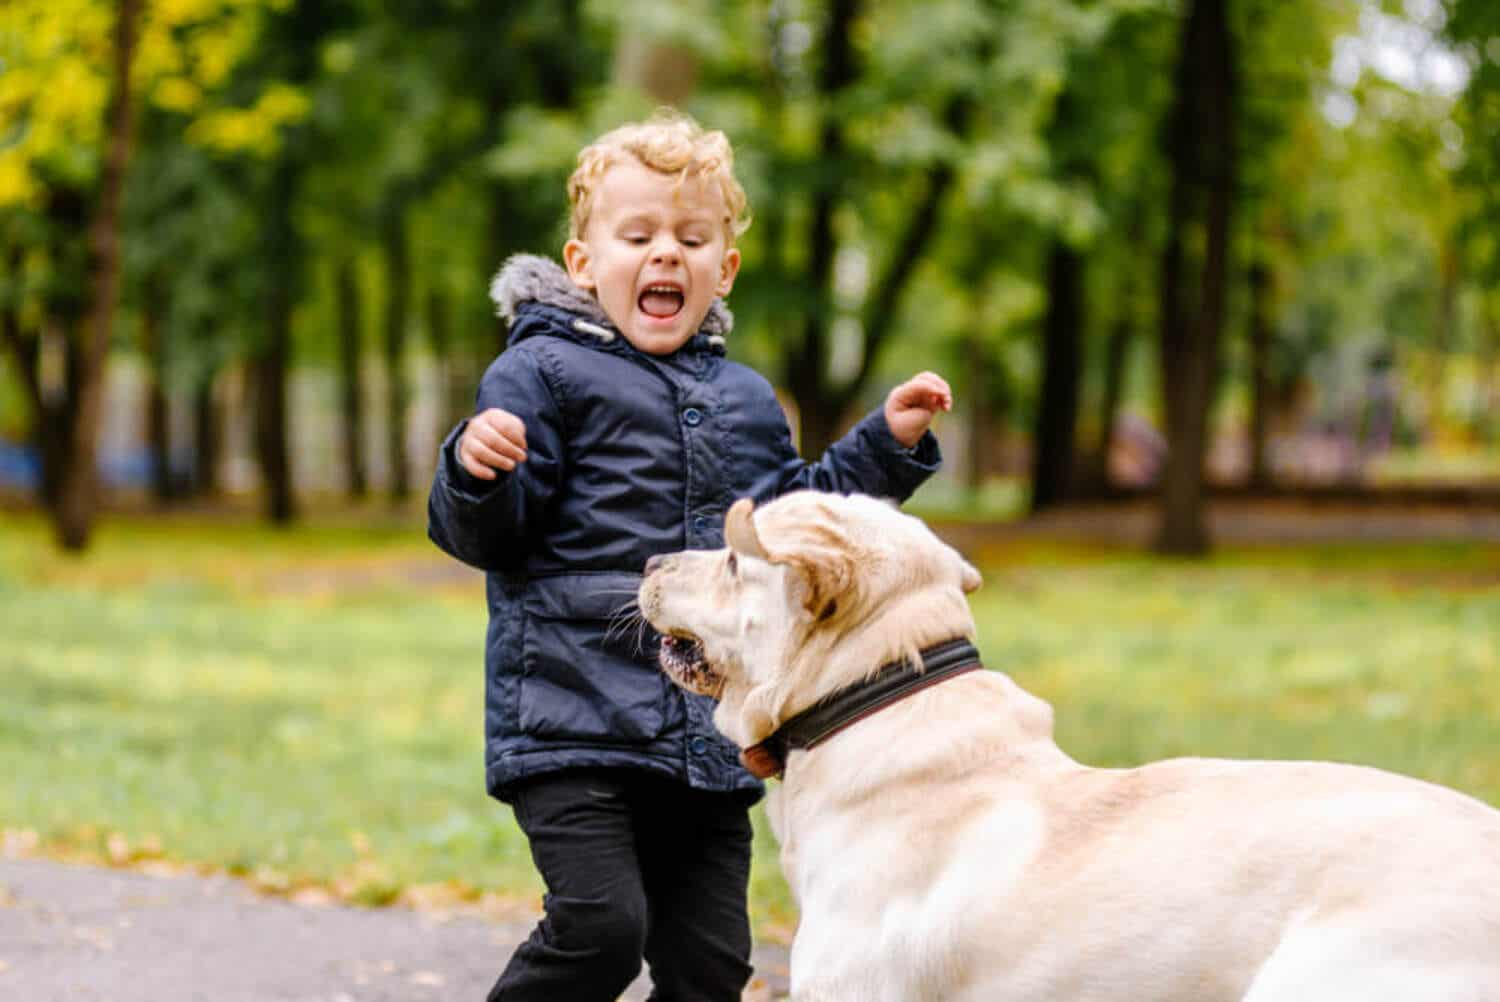 A child startled by a dog in the park.